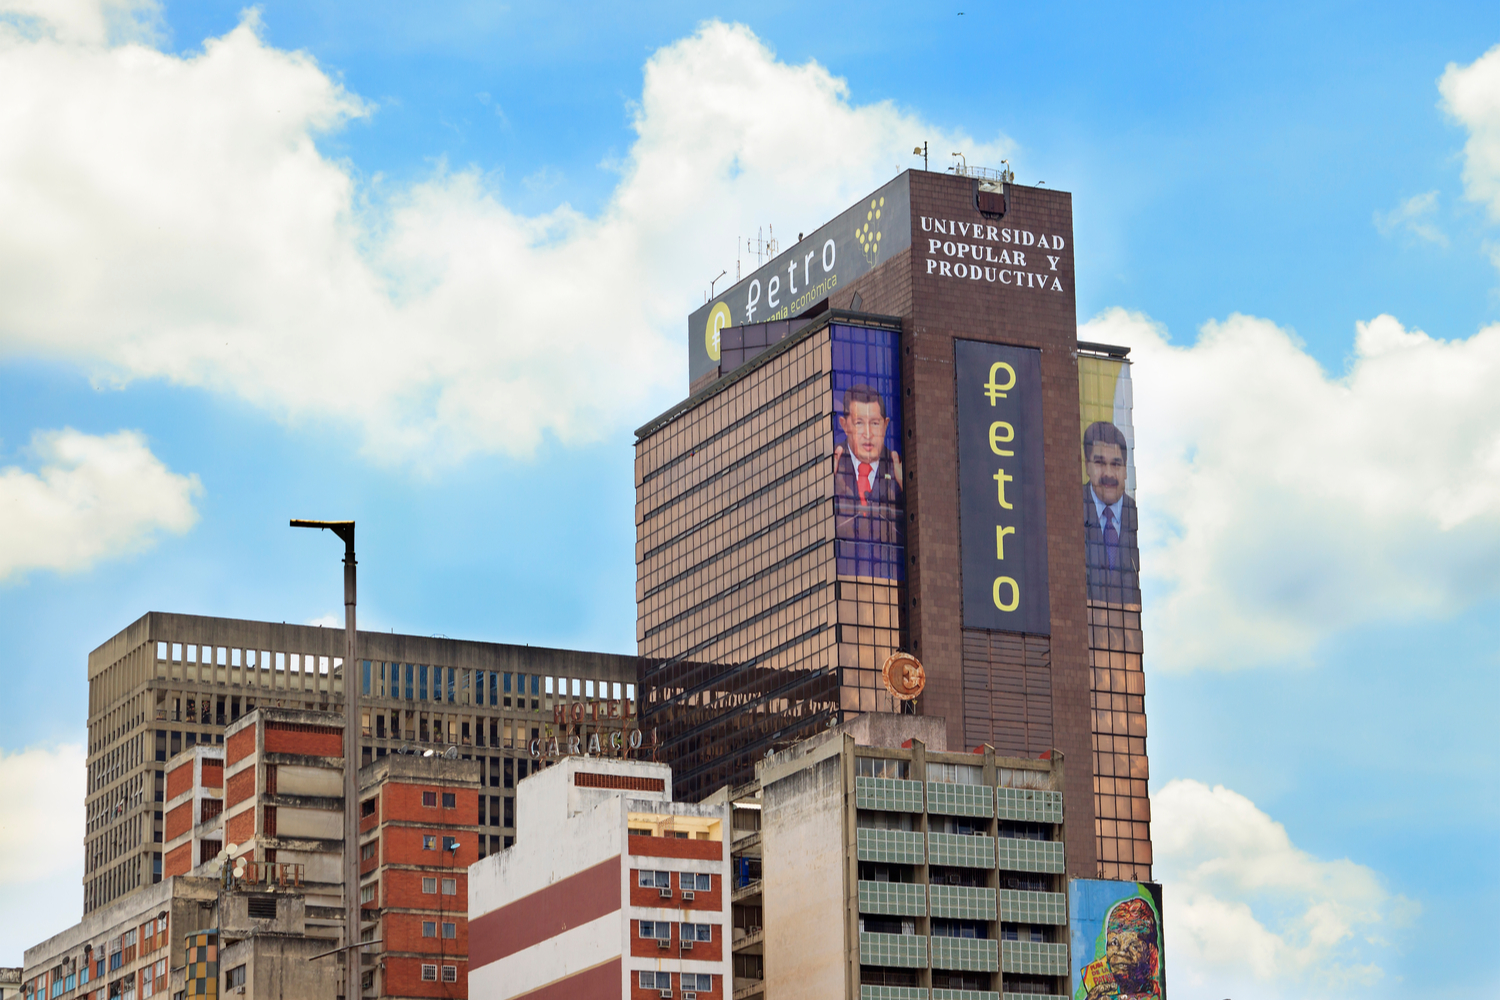 Report: Venezuela Is Forcibly Converting Pension Balances to the Petro - CoinDesk